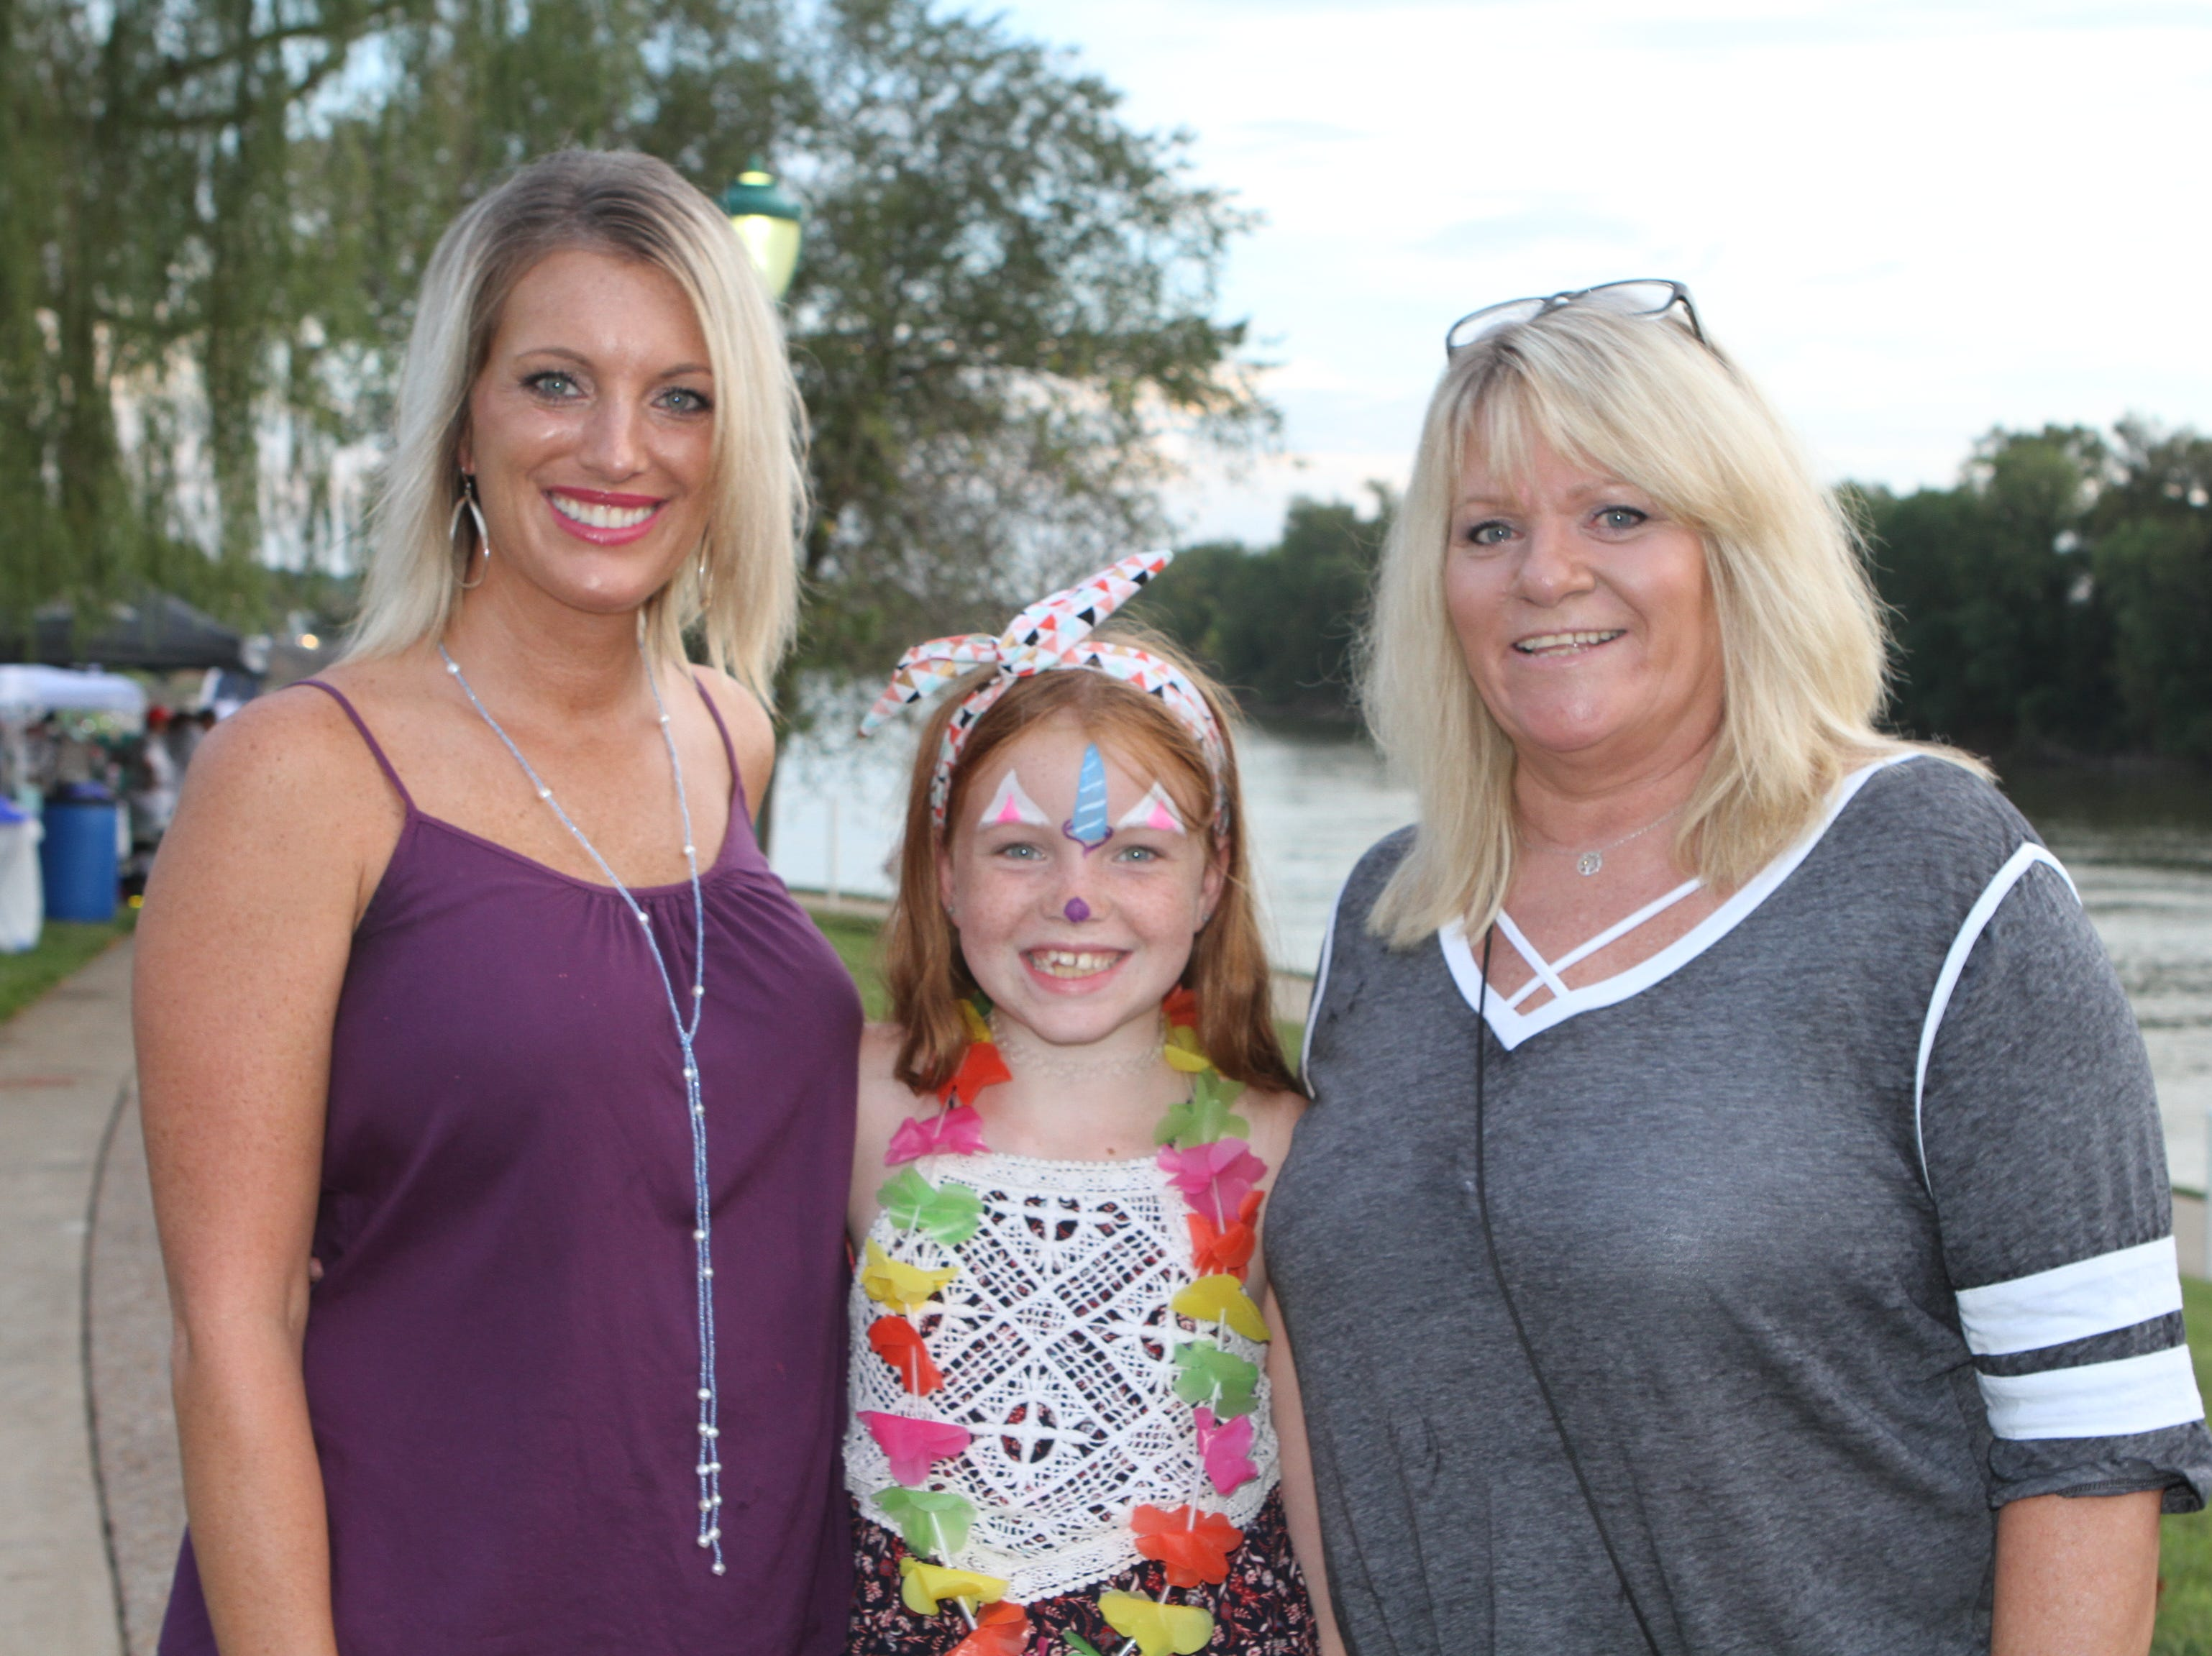 Melanie and Kadence Burns and Renate Bassim at Clarksville Riverfest on Friday night, Sept. 7, 2018.